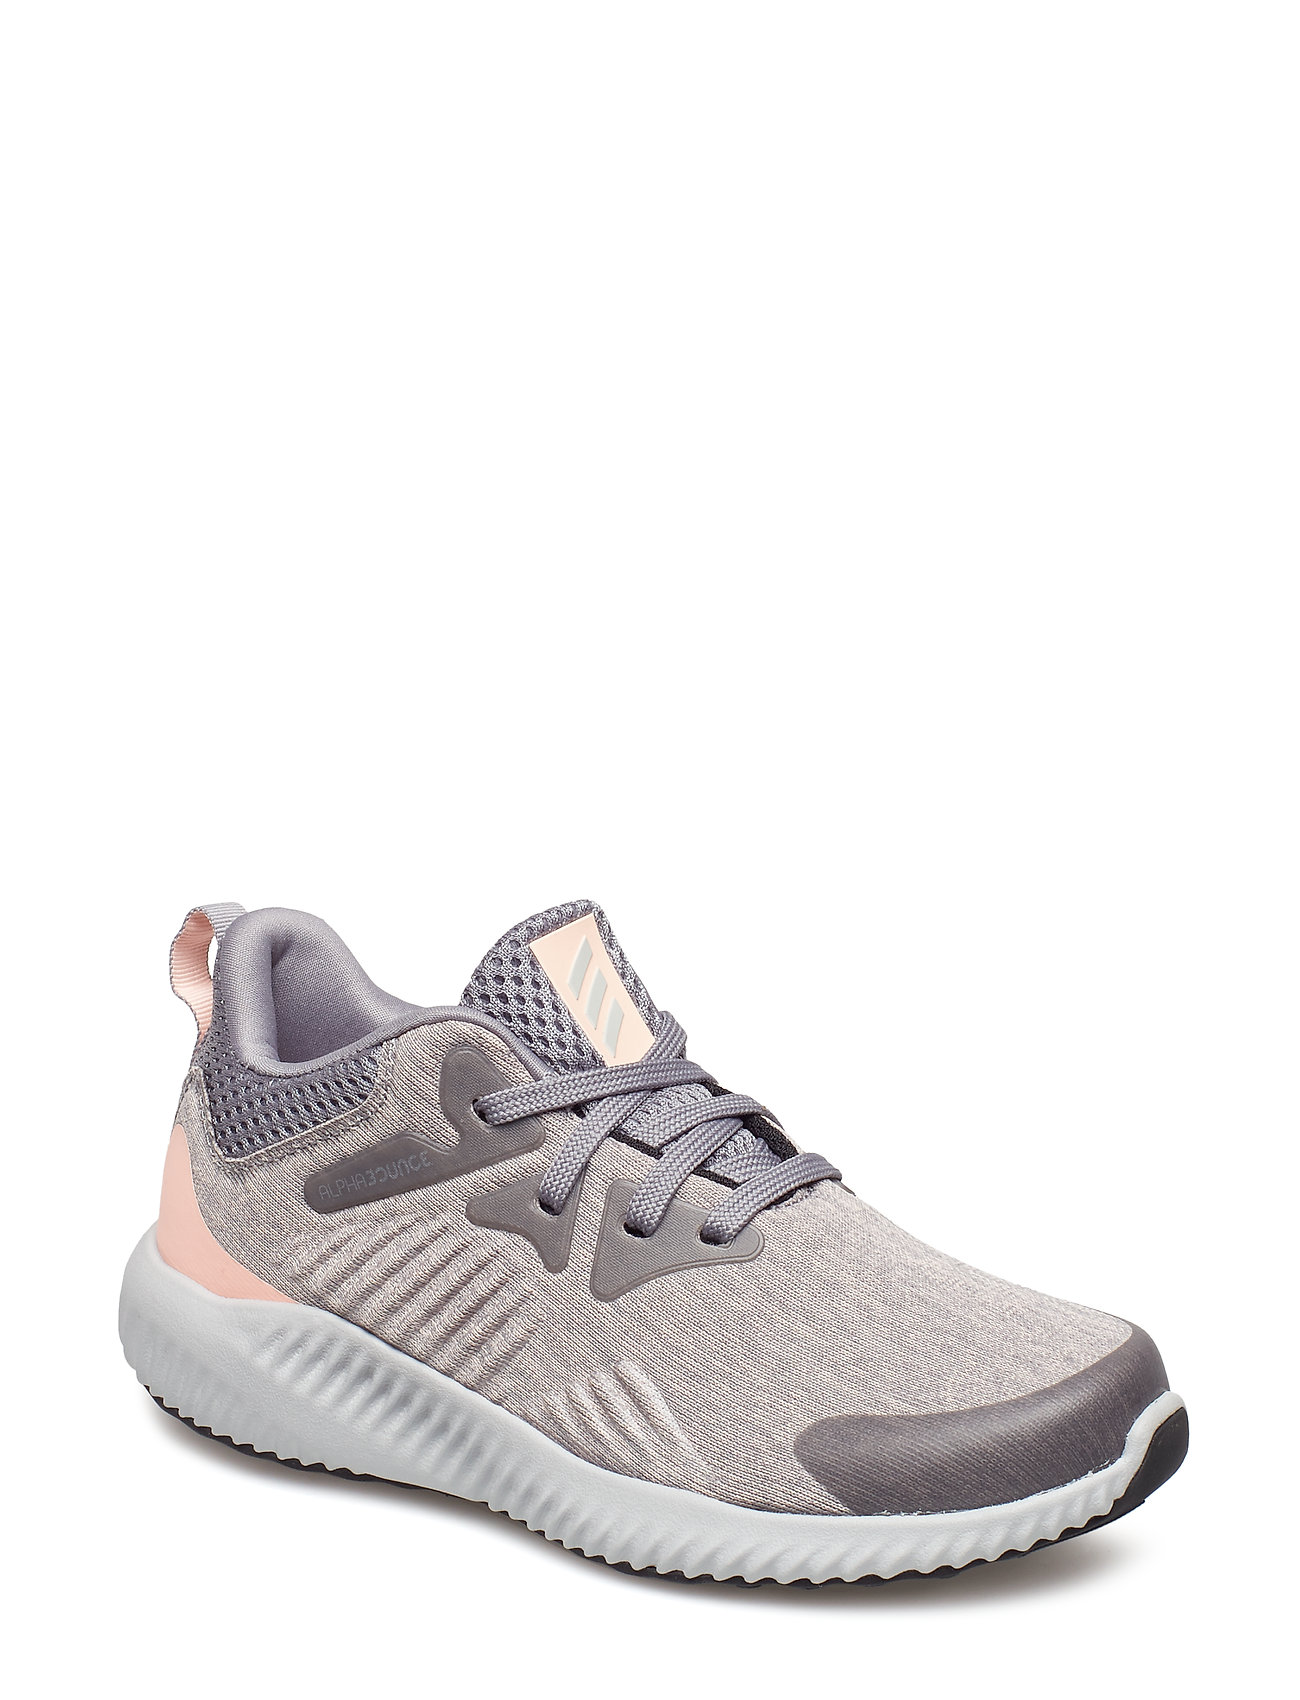 more photos 36adb f5e60 adidas Alphabounce Beyond C Harmaa, hinta 39 €